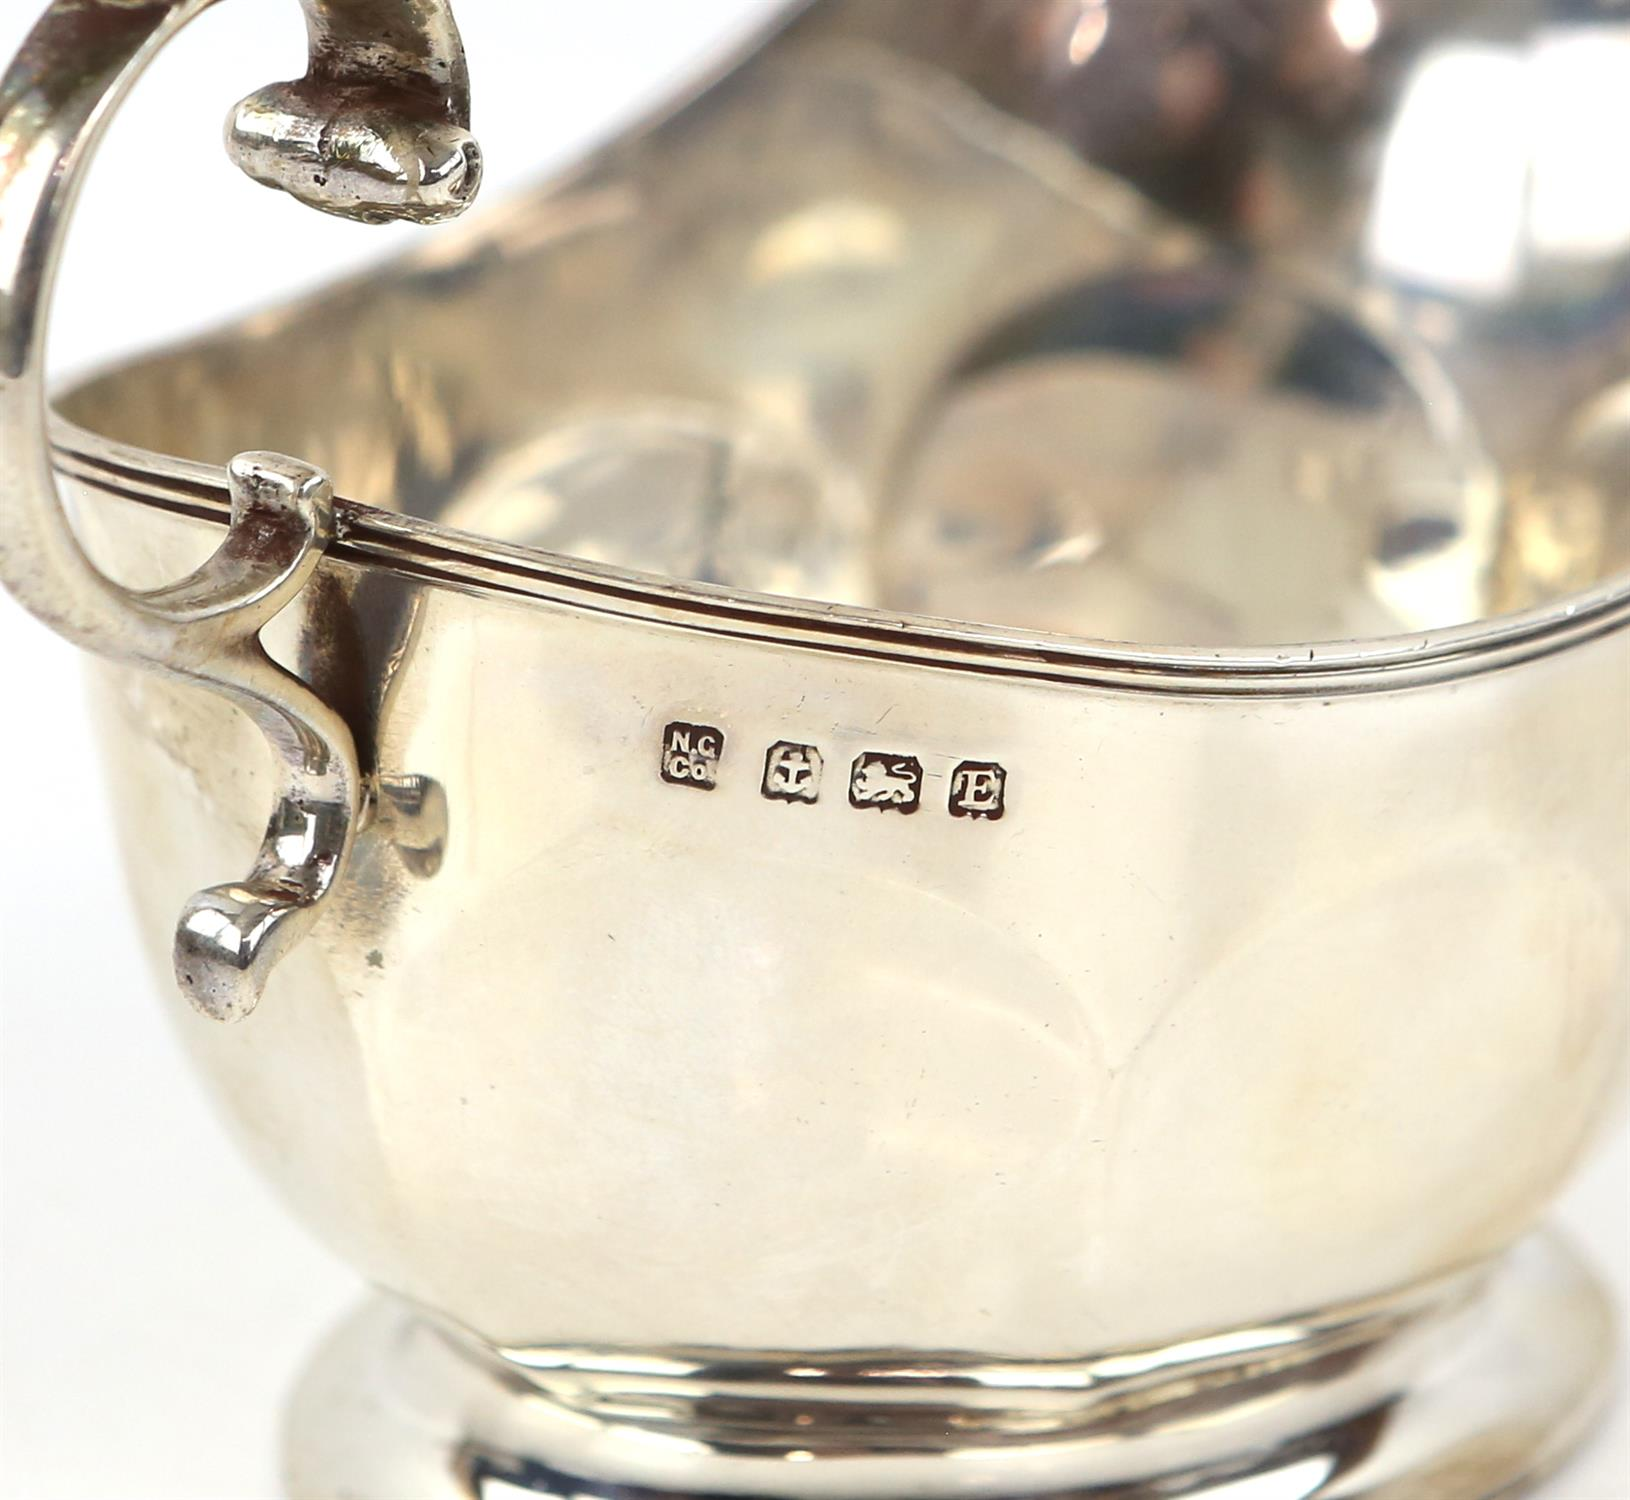 Victorian fern engraved silver mug, a silver sauce boat, a silver small trophy cup 403 grms 13 ozs - Image 10 of 10